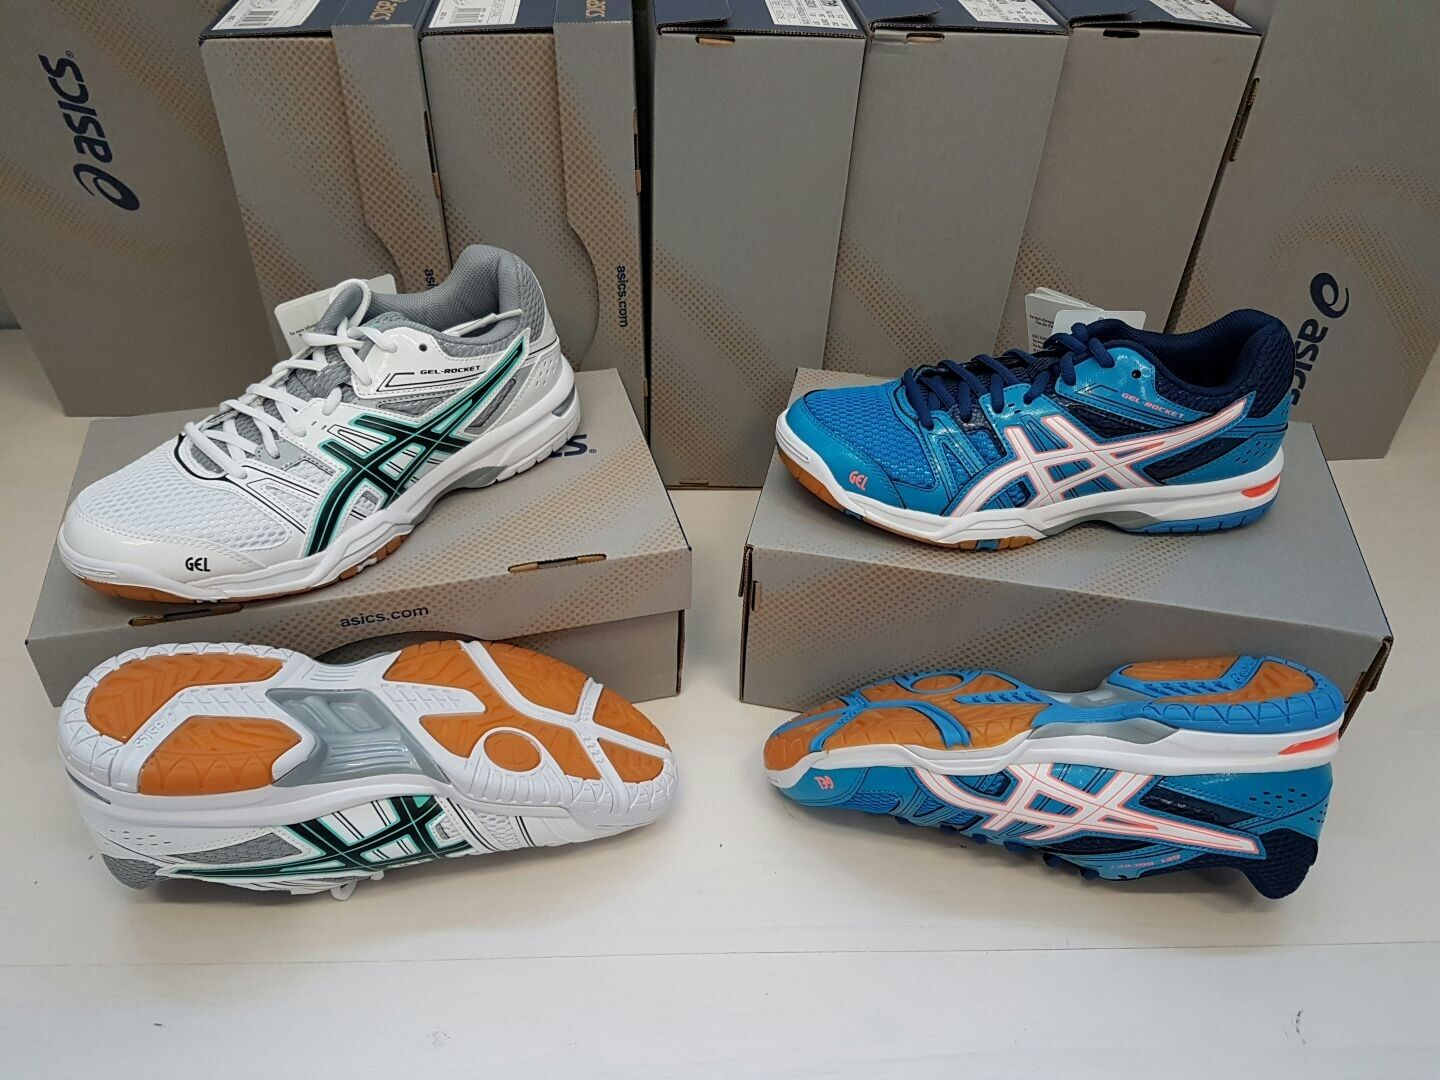 FW17 ASICS FIPAV SCARPE GEL ROCKET 7 VOLLEY PALLAVOLO SHOES DONNA WOMAN VOLLEY 7 18701e